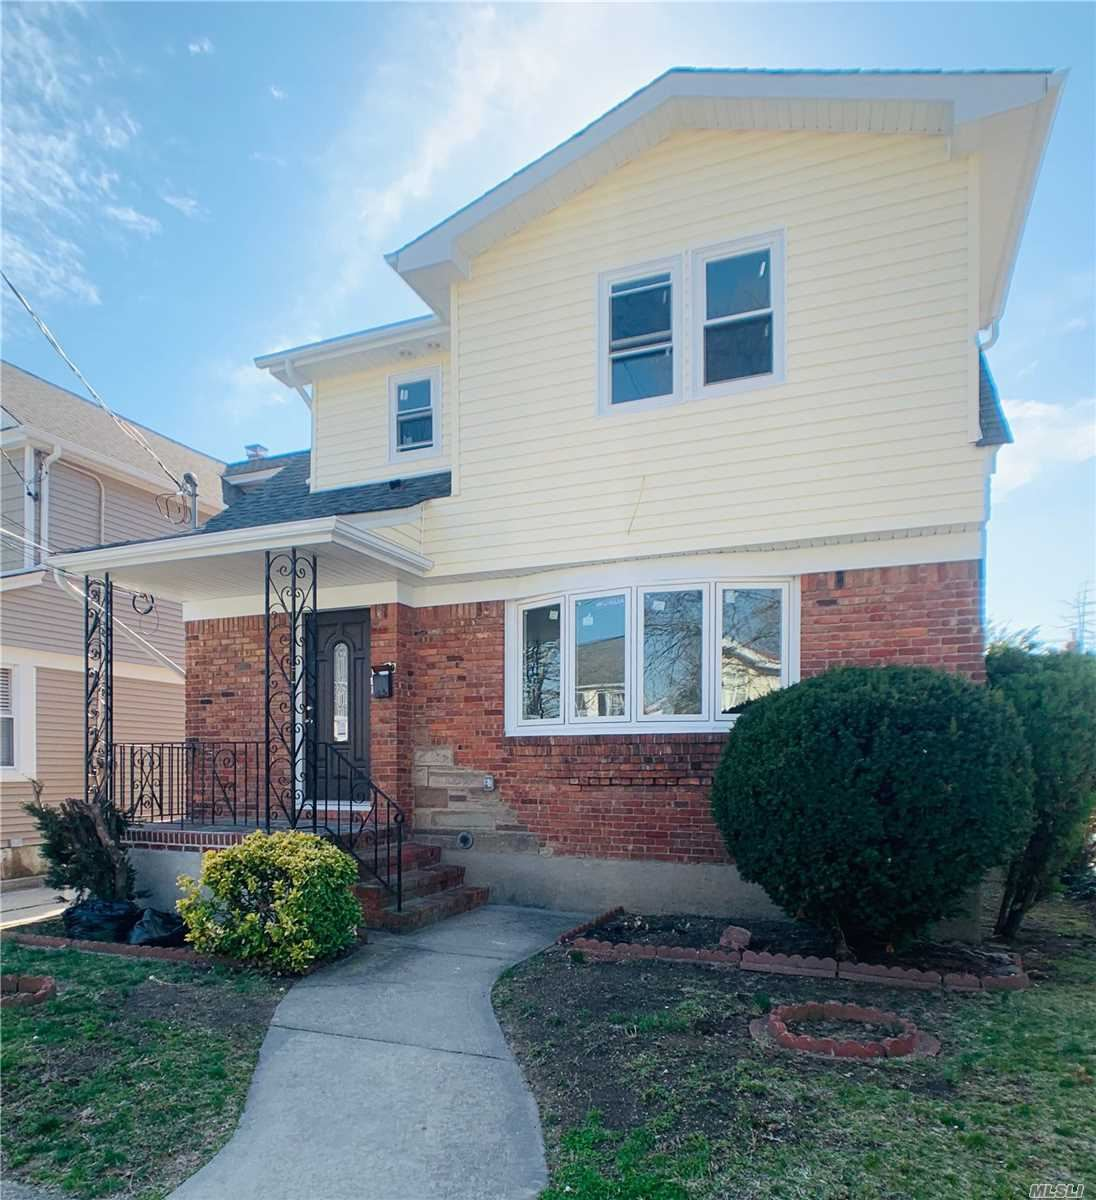 85-60 262nd Street, Floral Park, NY 11001 - MLS#: 3210253